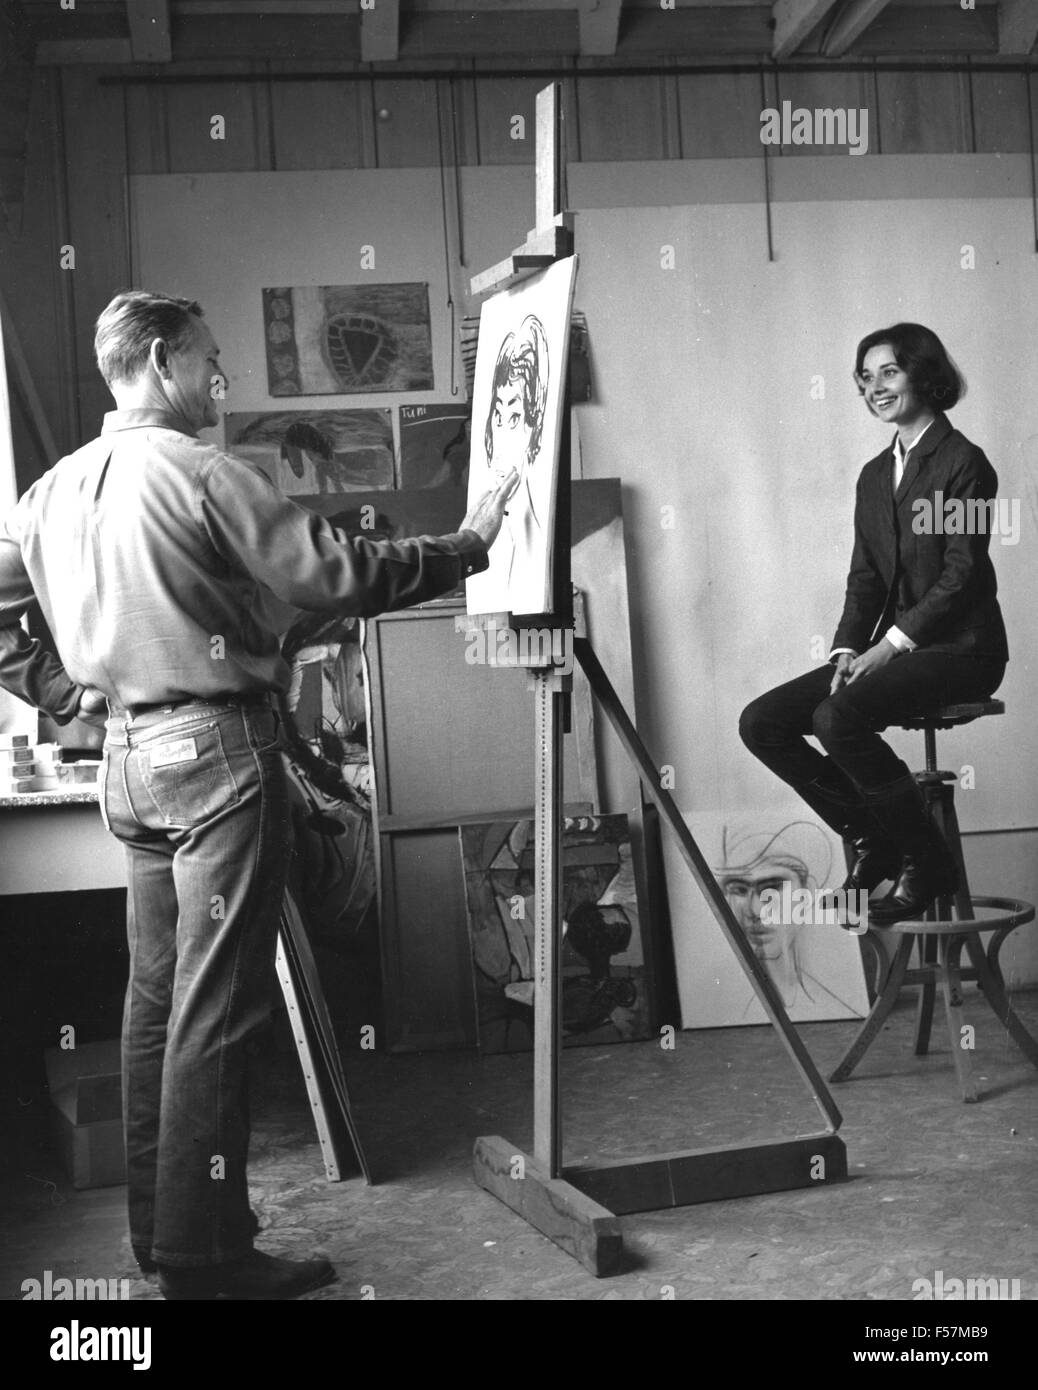 CHANNING PEAKE (1910-1989) American artist painting Audrey Hepburn about 1965 - Stock Image